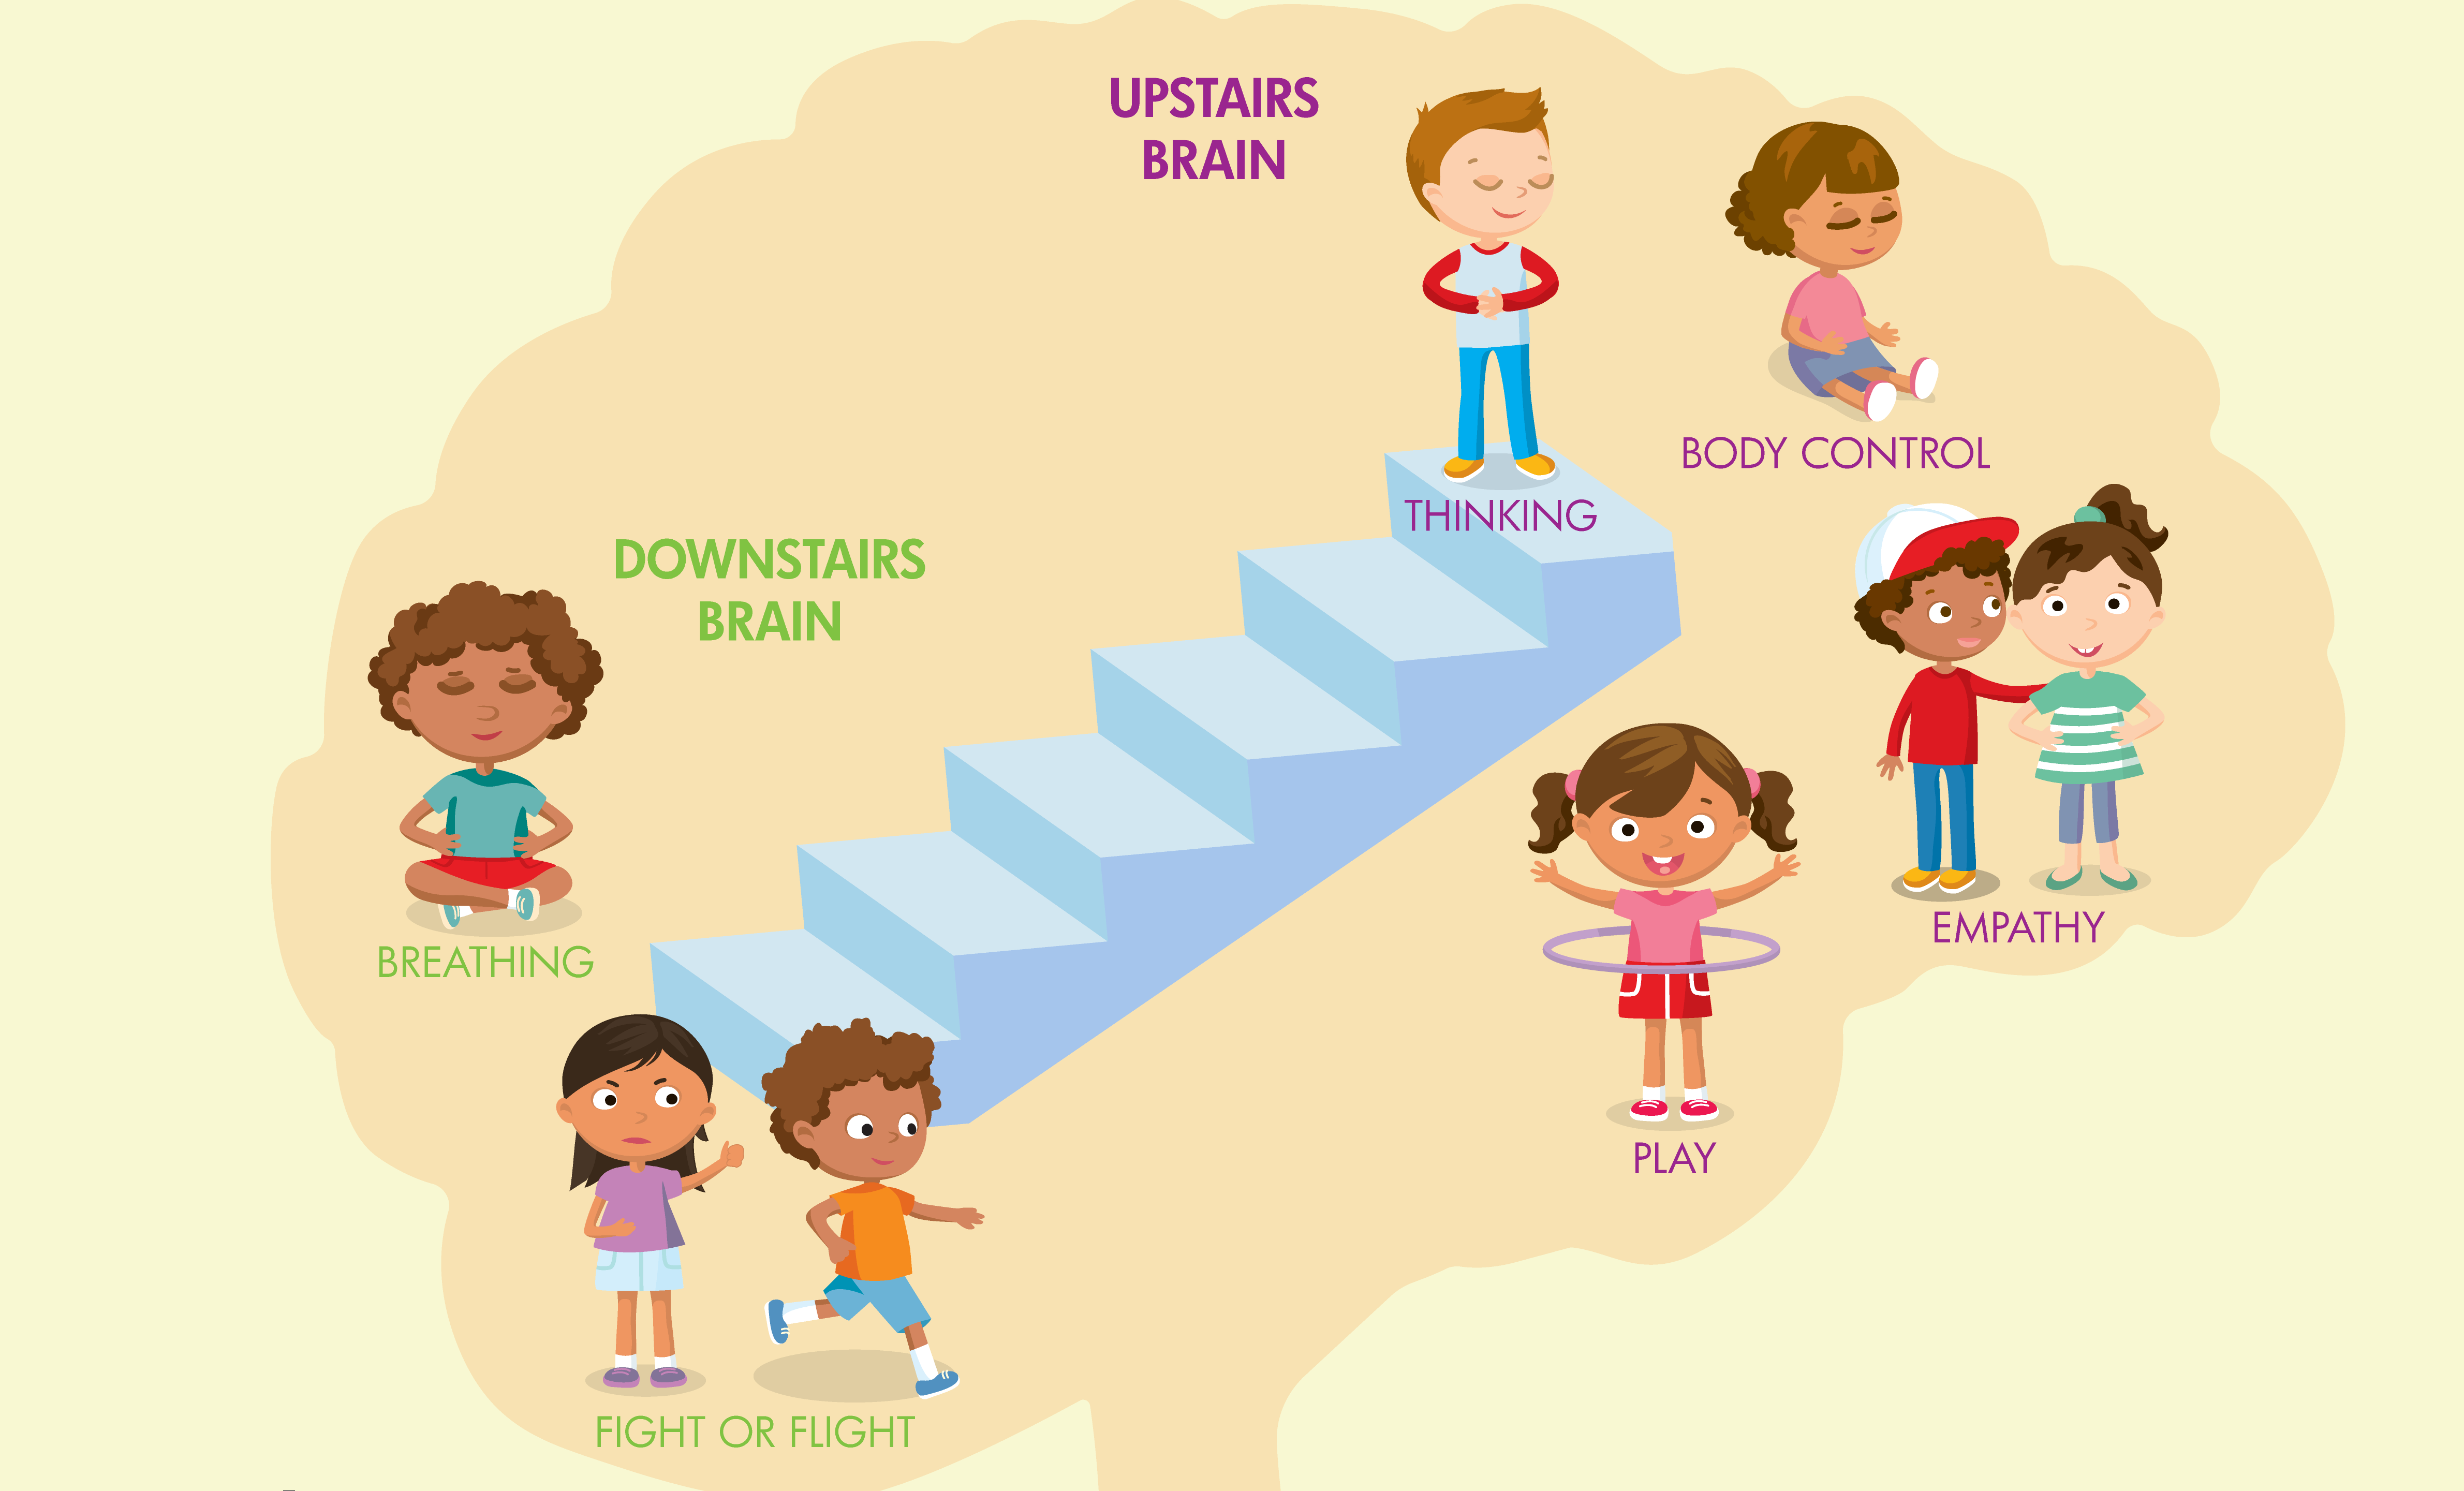 Activities associated with upstairs and downstairs brain